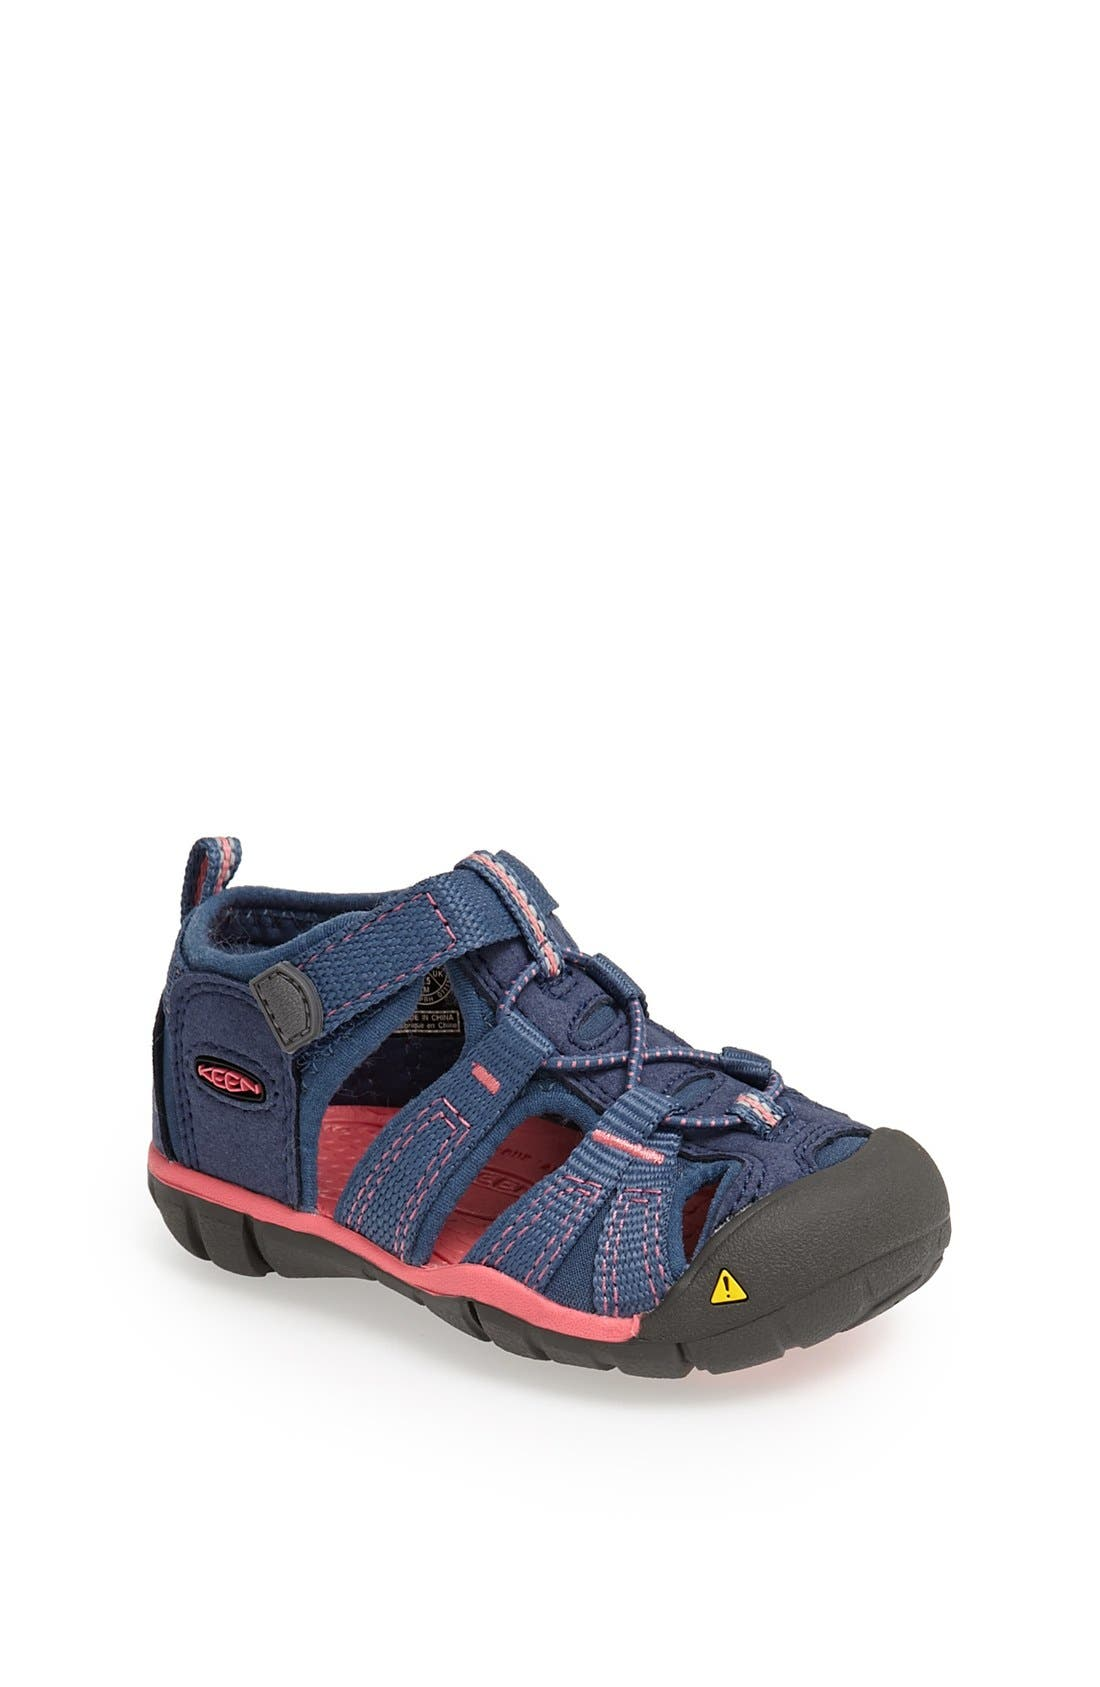 Alternate Image 1 Selected - Keen 'Seacamp II' Waterproof Sandal (Baby & Walker)